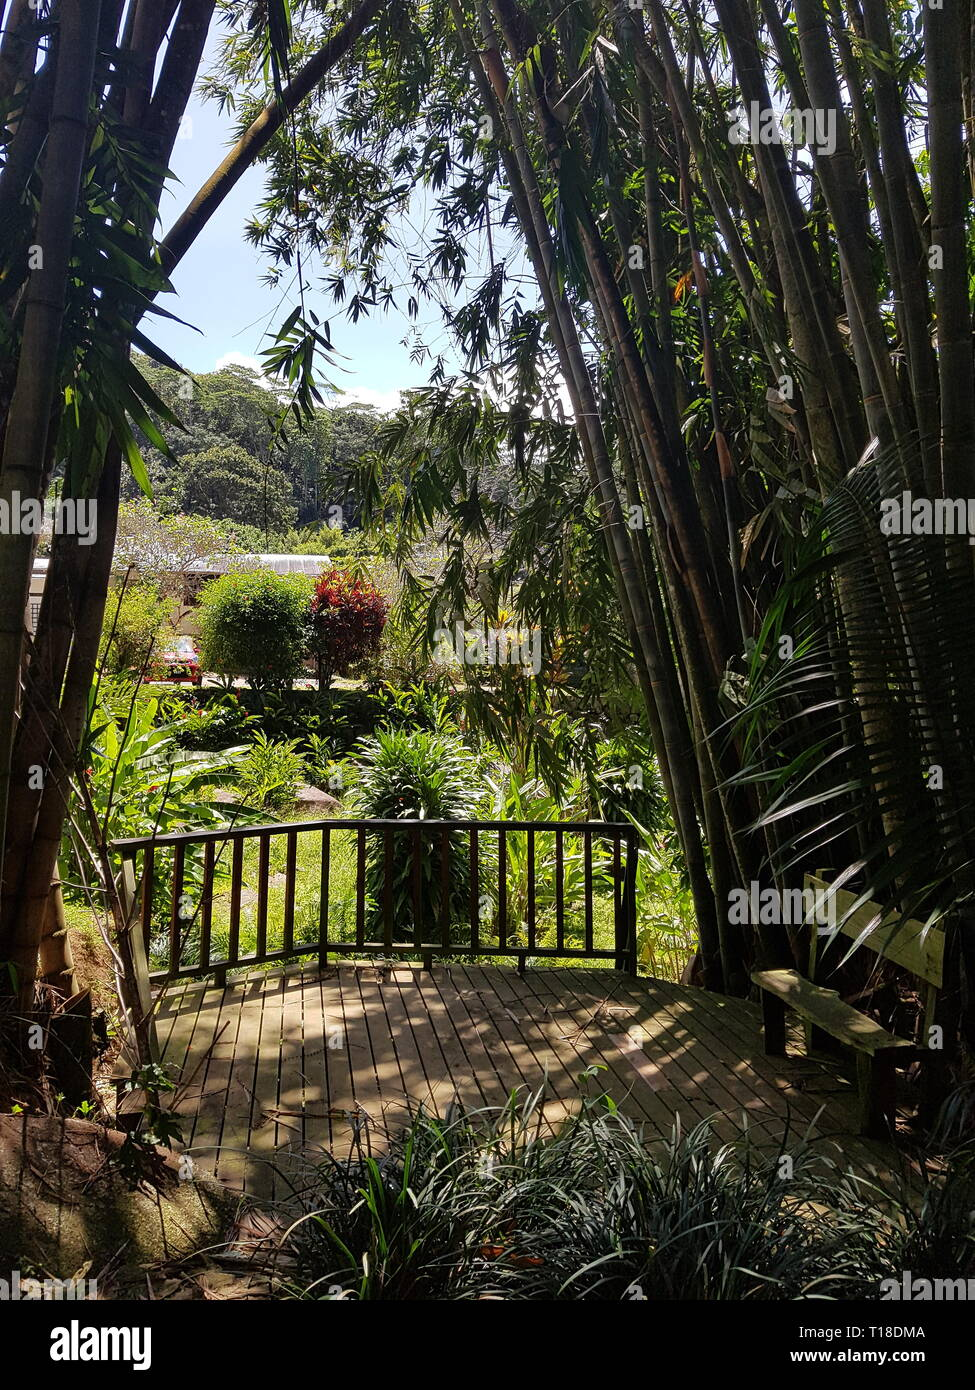 Bamboo and a fence in Jardin Du Roi at the Seychelles Stock Photo